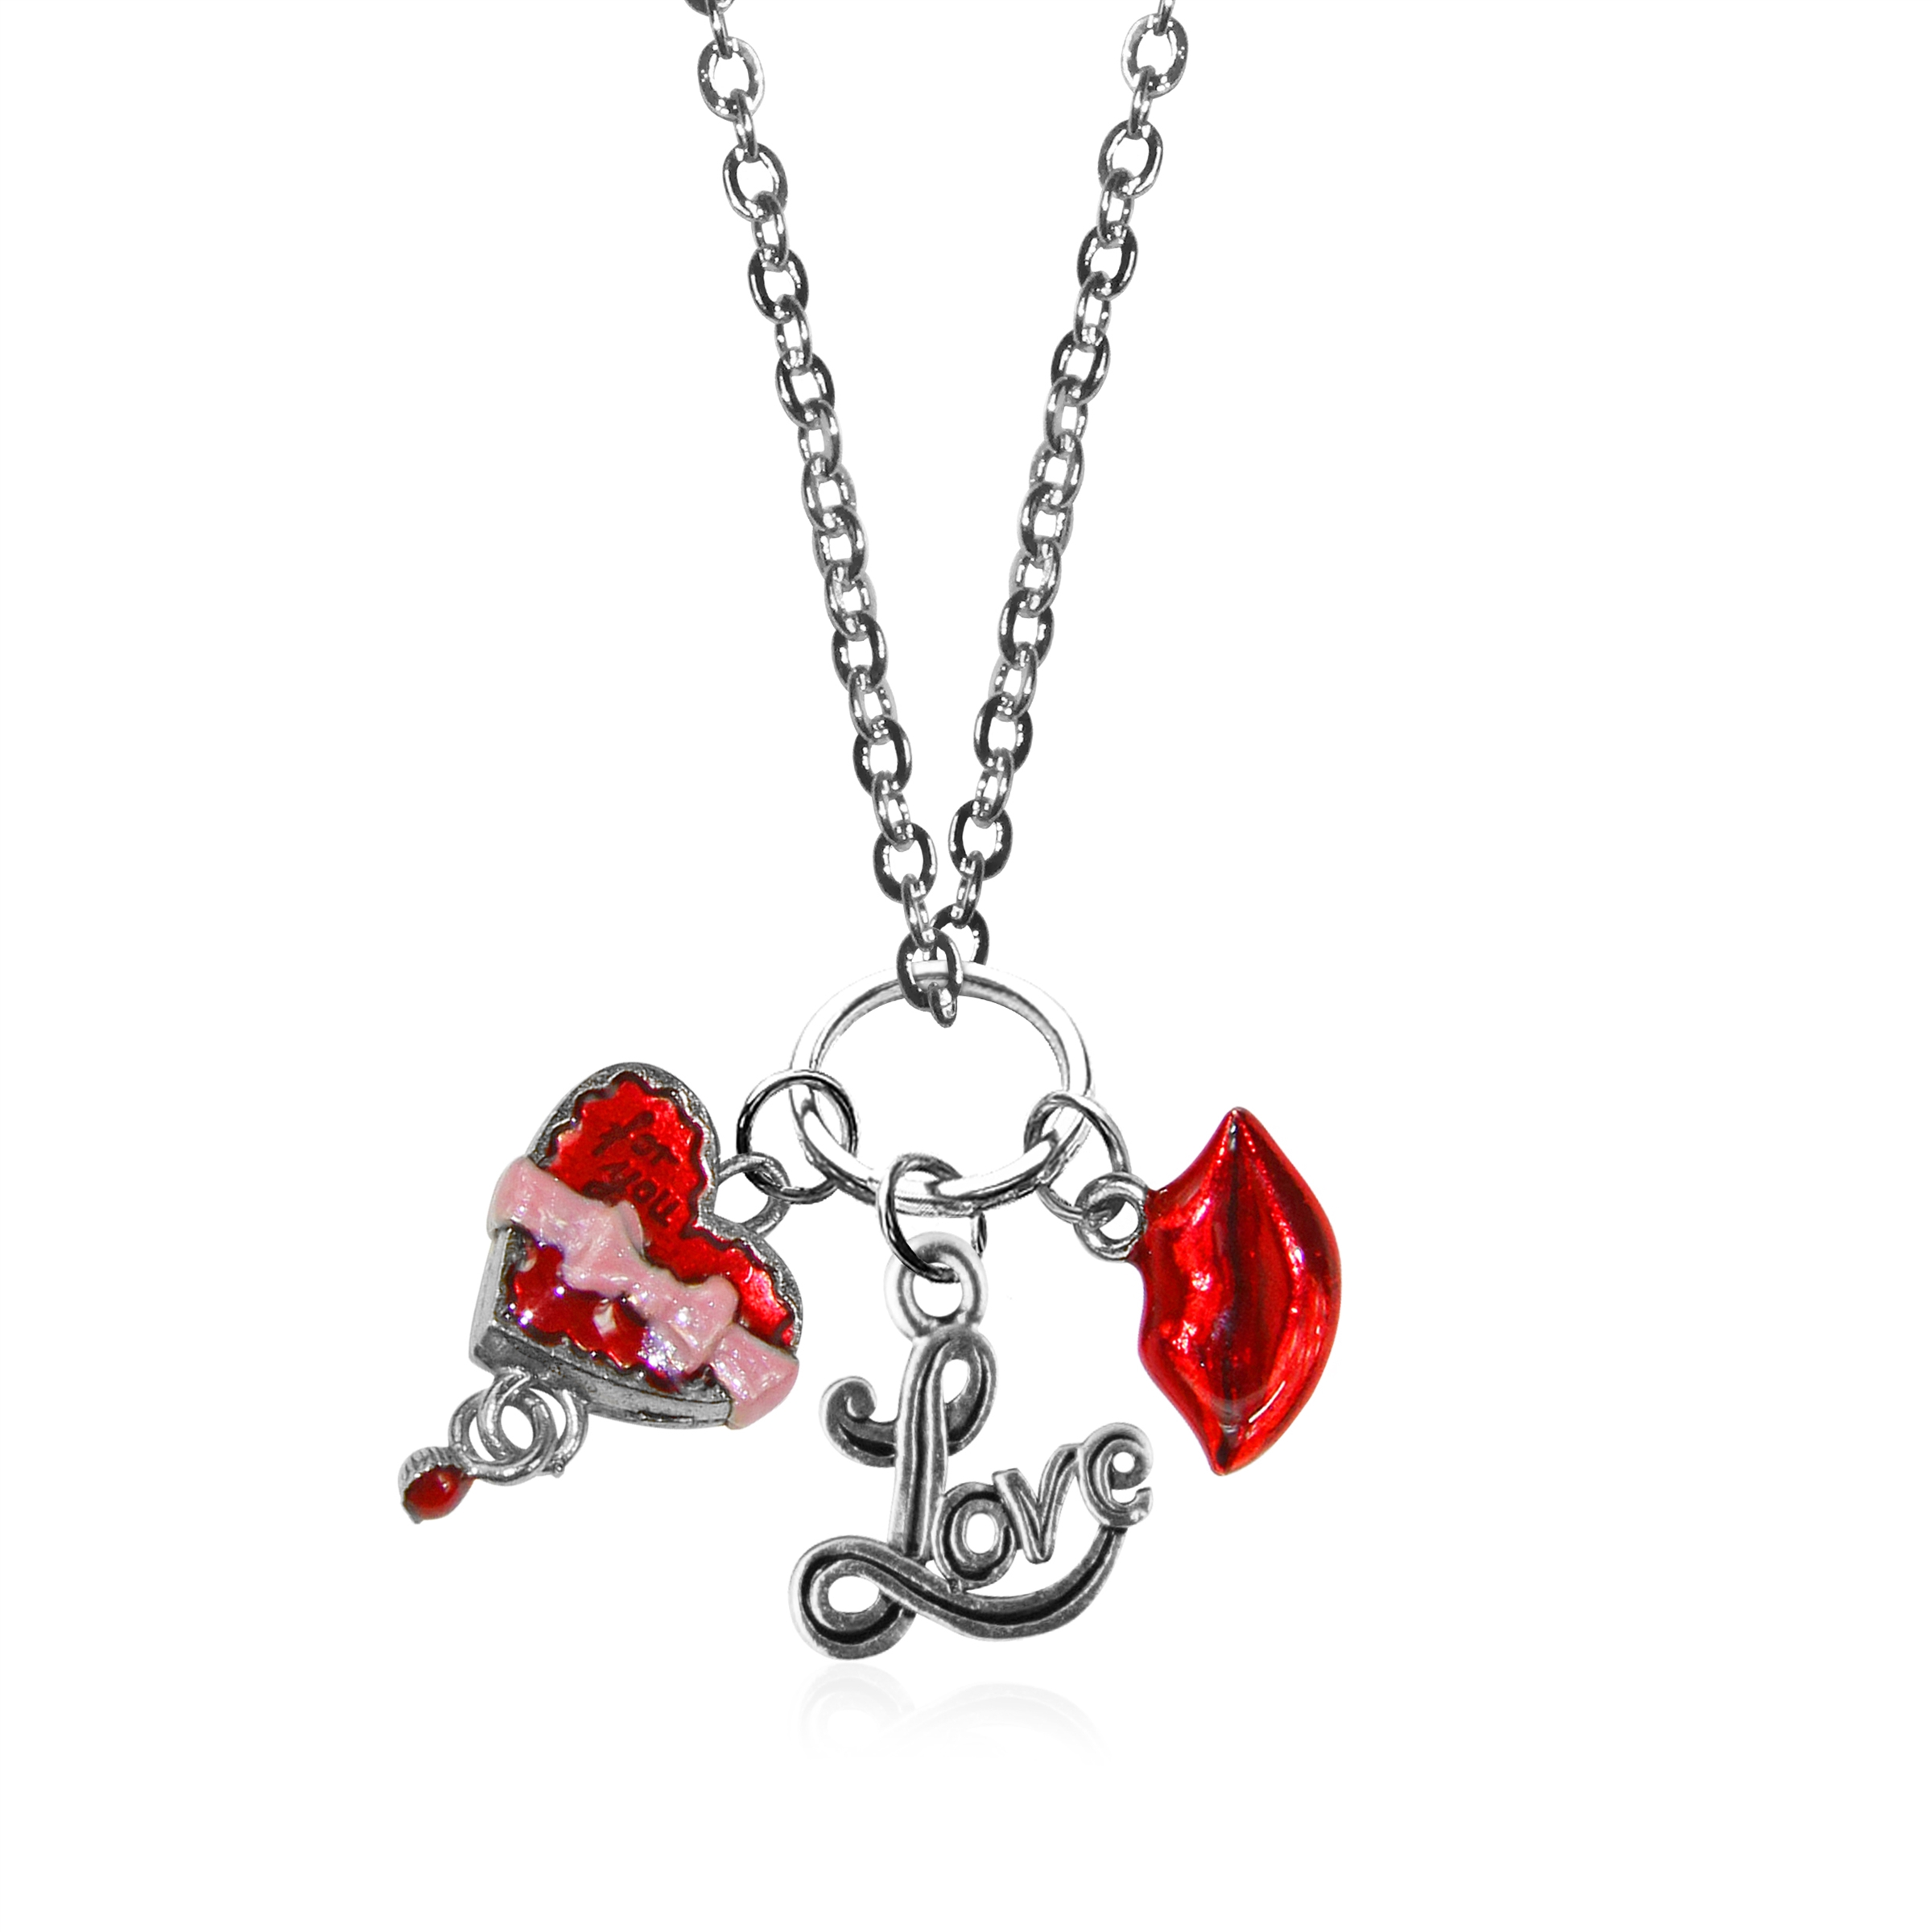 s cuori discendenti jewelry collana necklace valentines fan queen corona crown item san regina hearts della red valentino costume valentine heart descendants giorno evie day di of